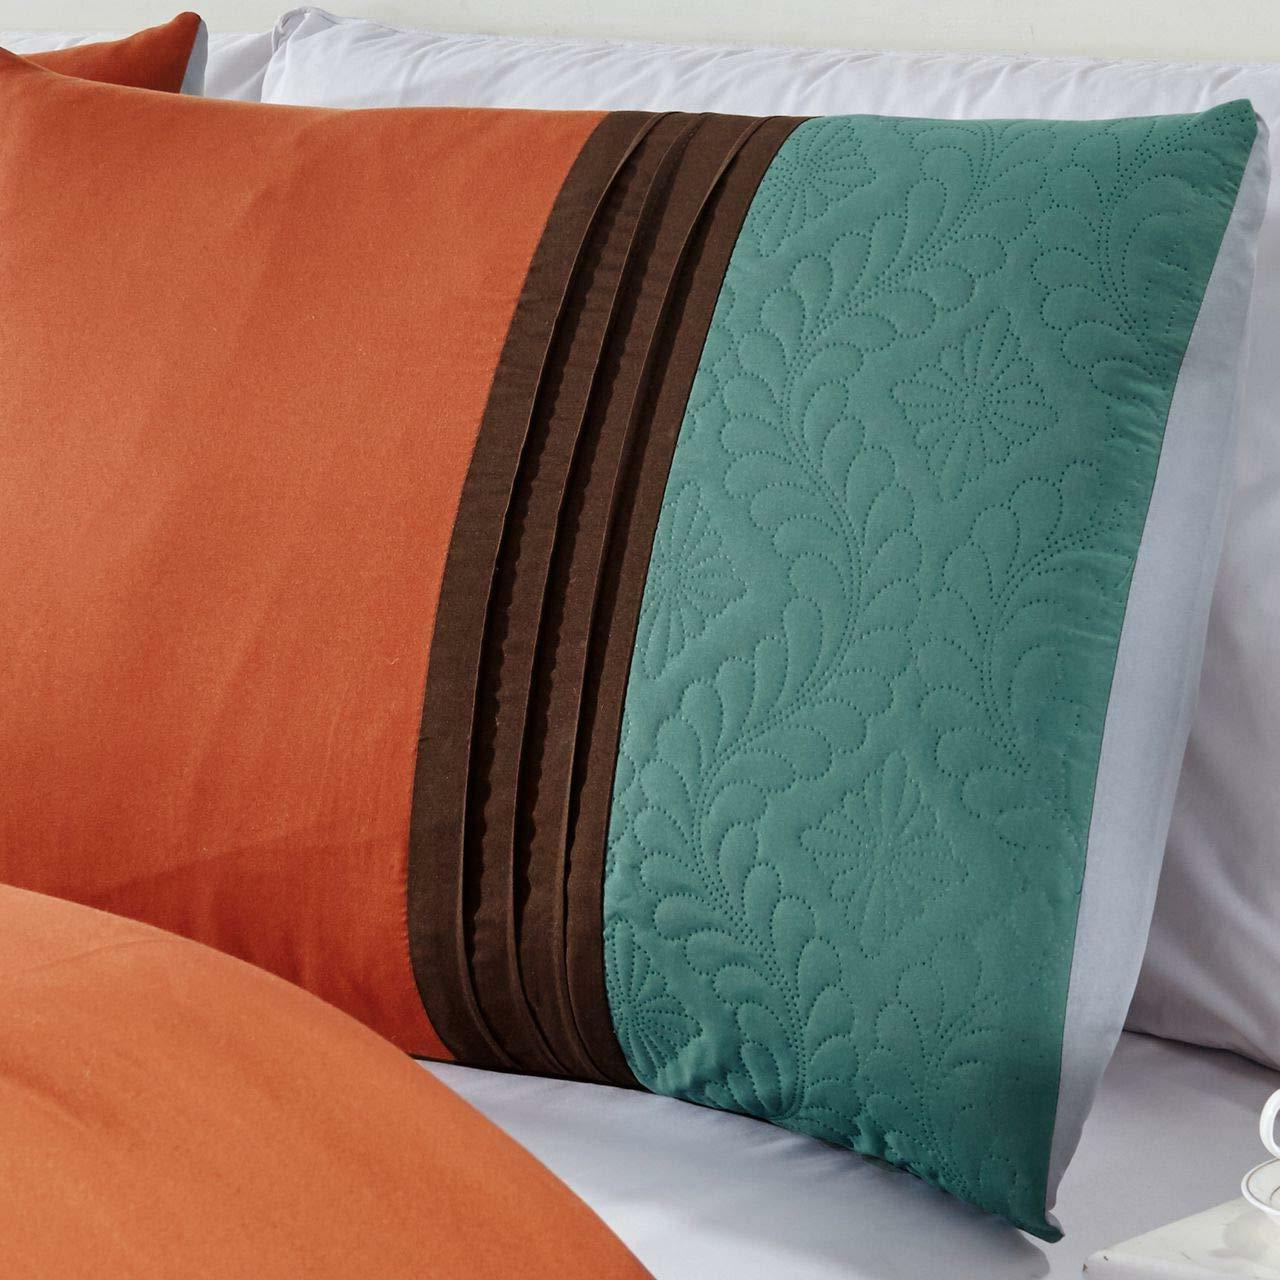 7 Comforter Set Embossed Pattern Pleated - Teal /Brown